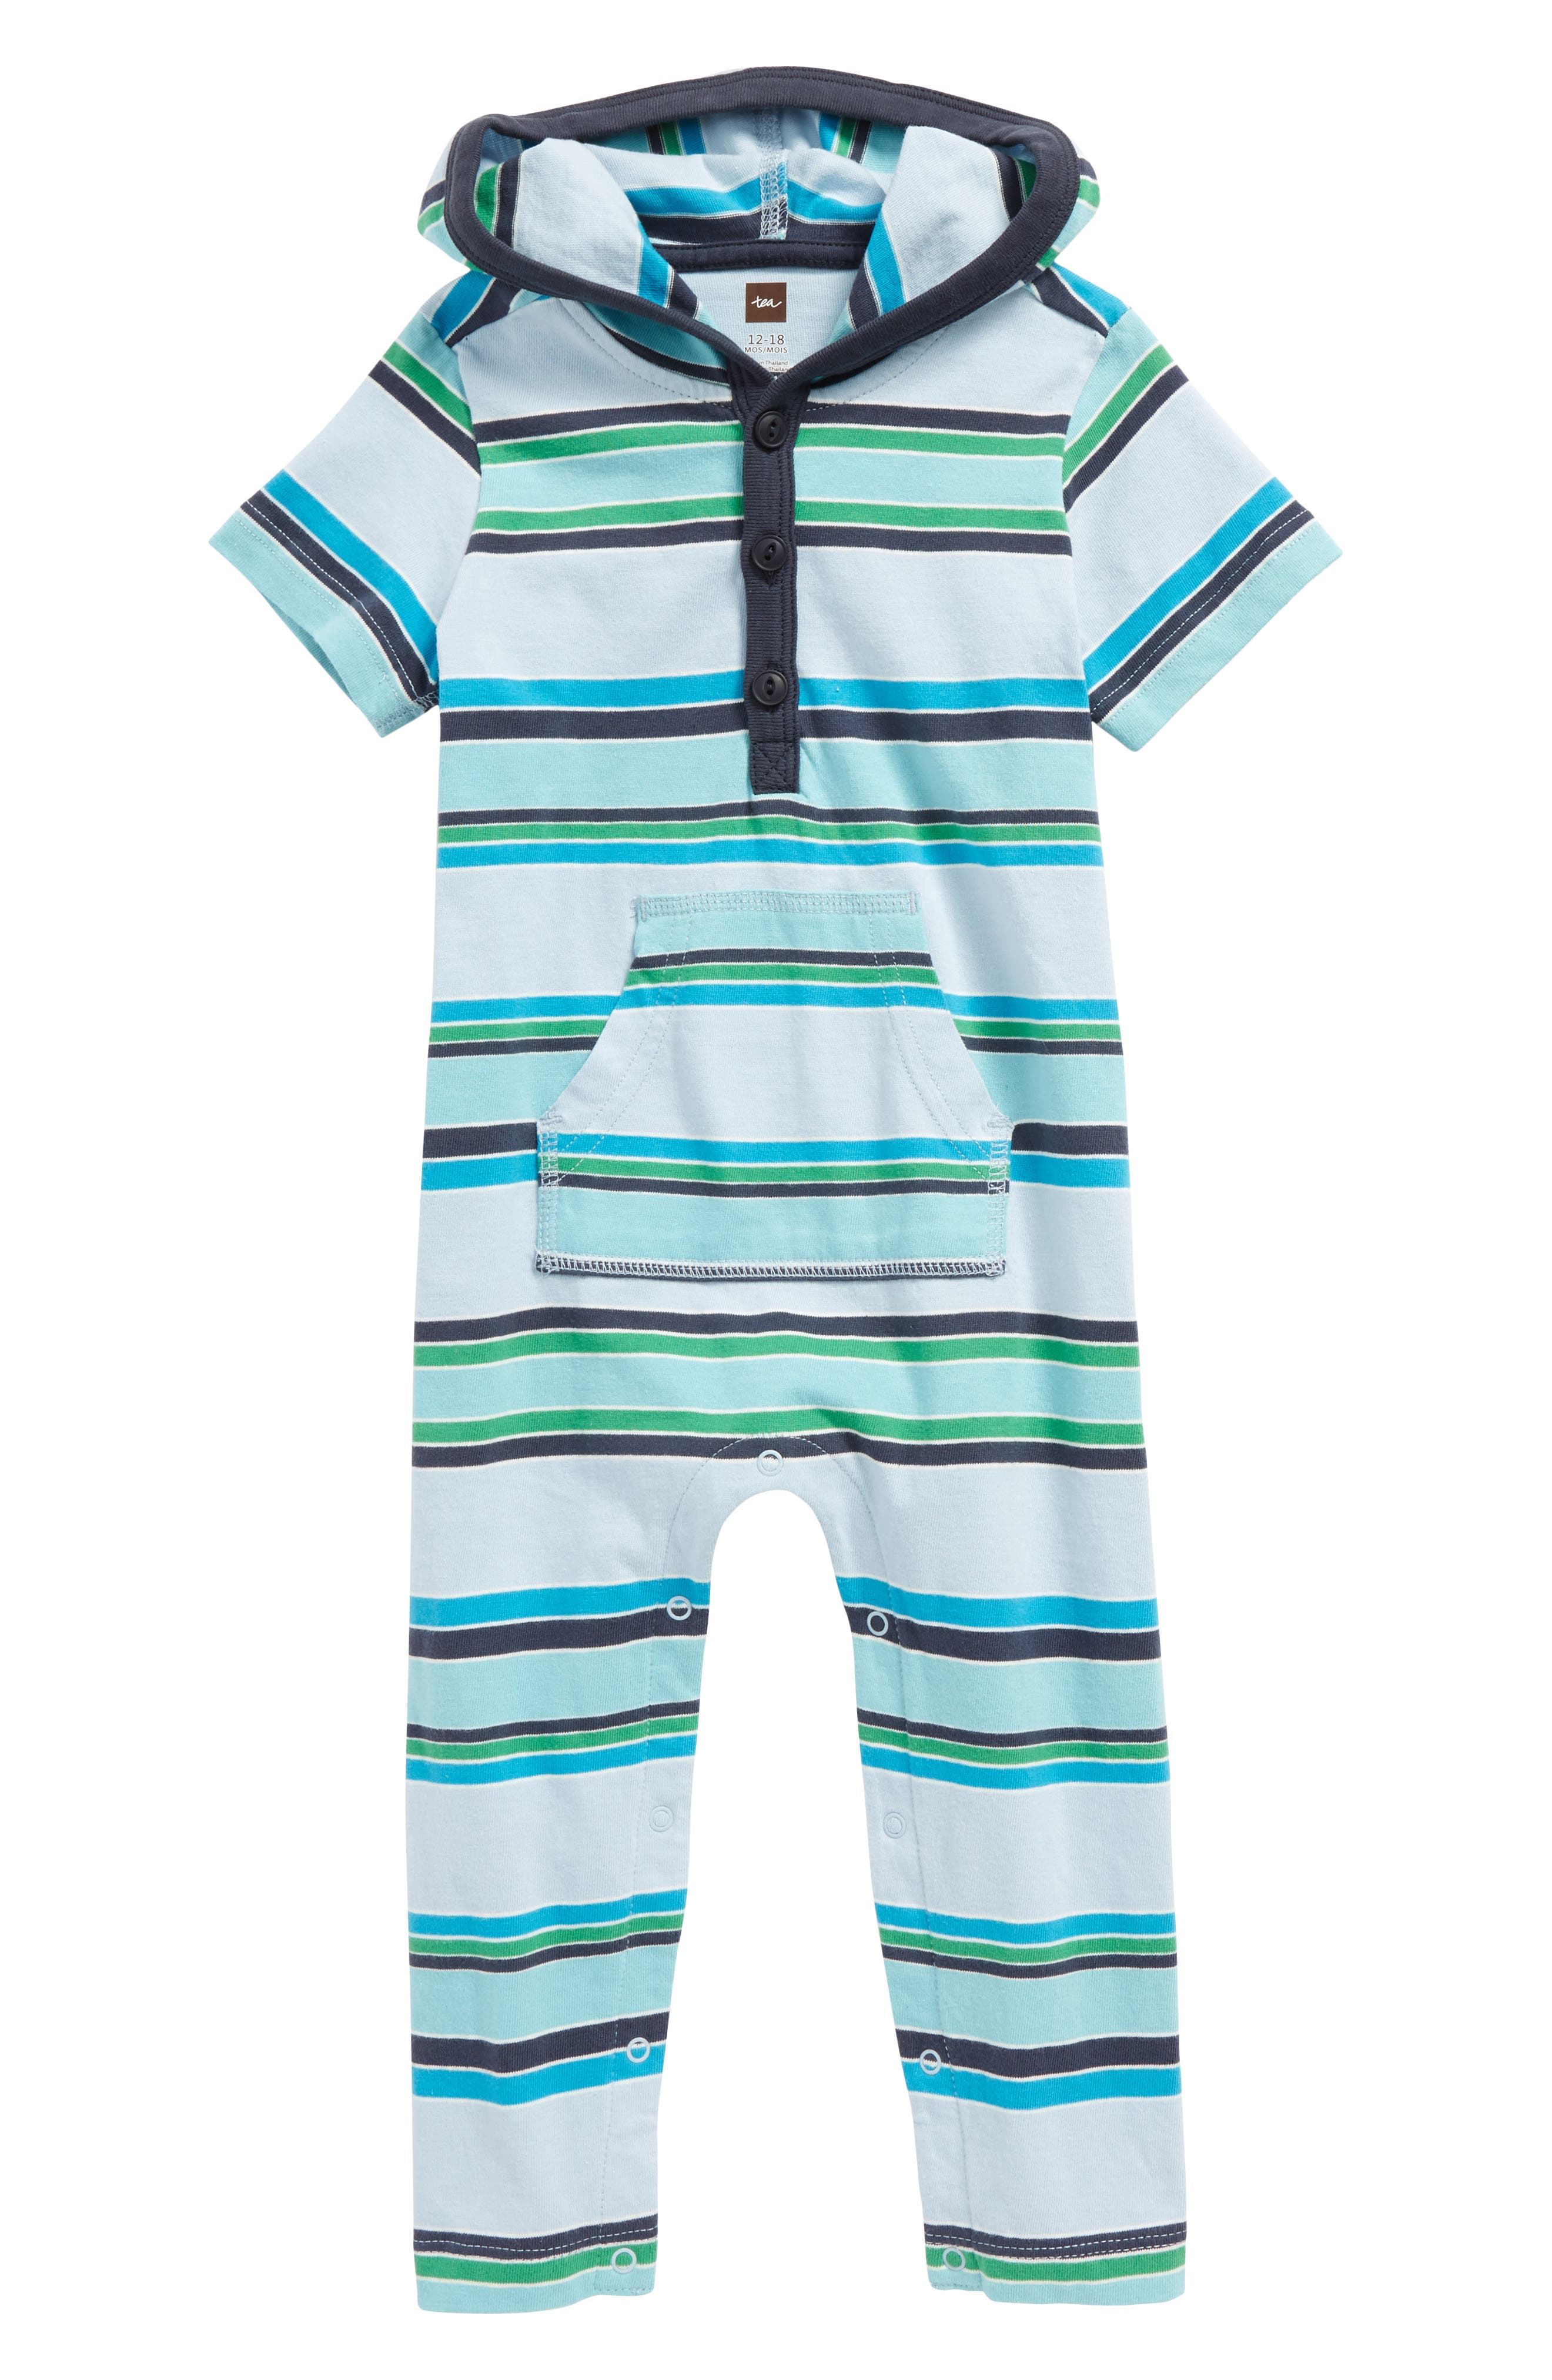 Alternate Image 1 Selected - Tea Collection Horizon Hooded Romper (Baby Boys)